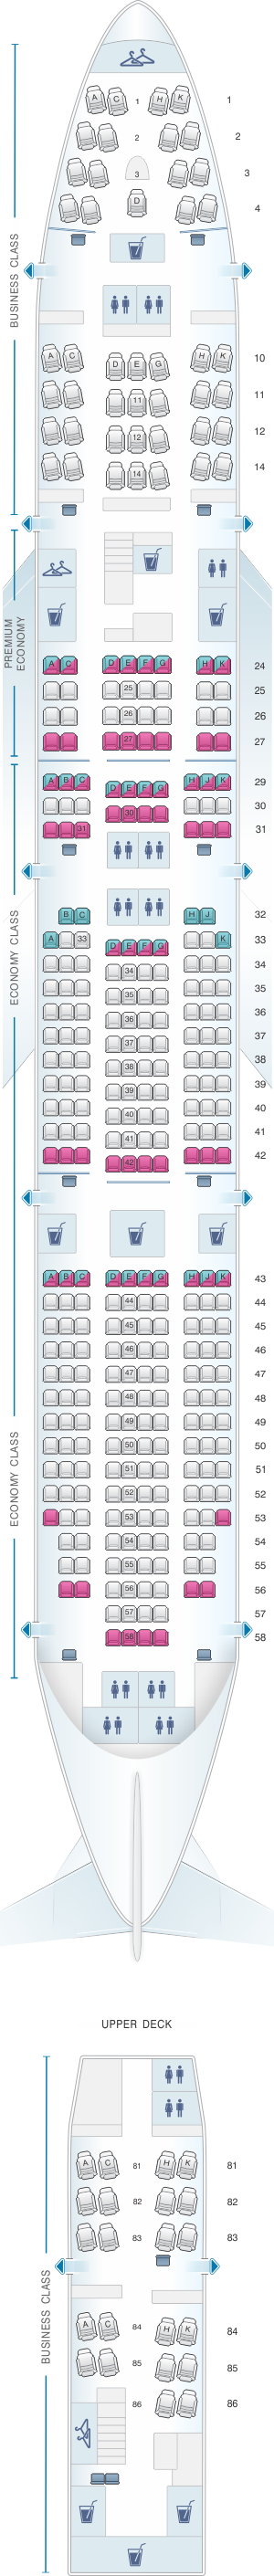 Seat map for Lufthansa Boeing B747 400 371pax